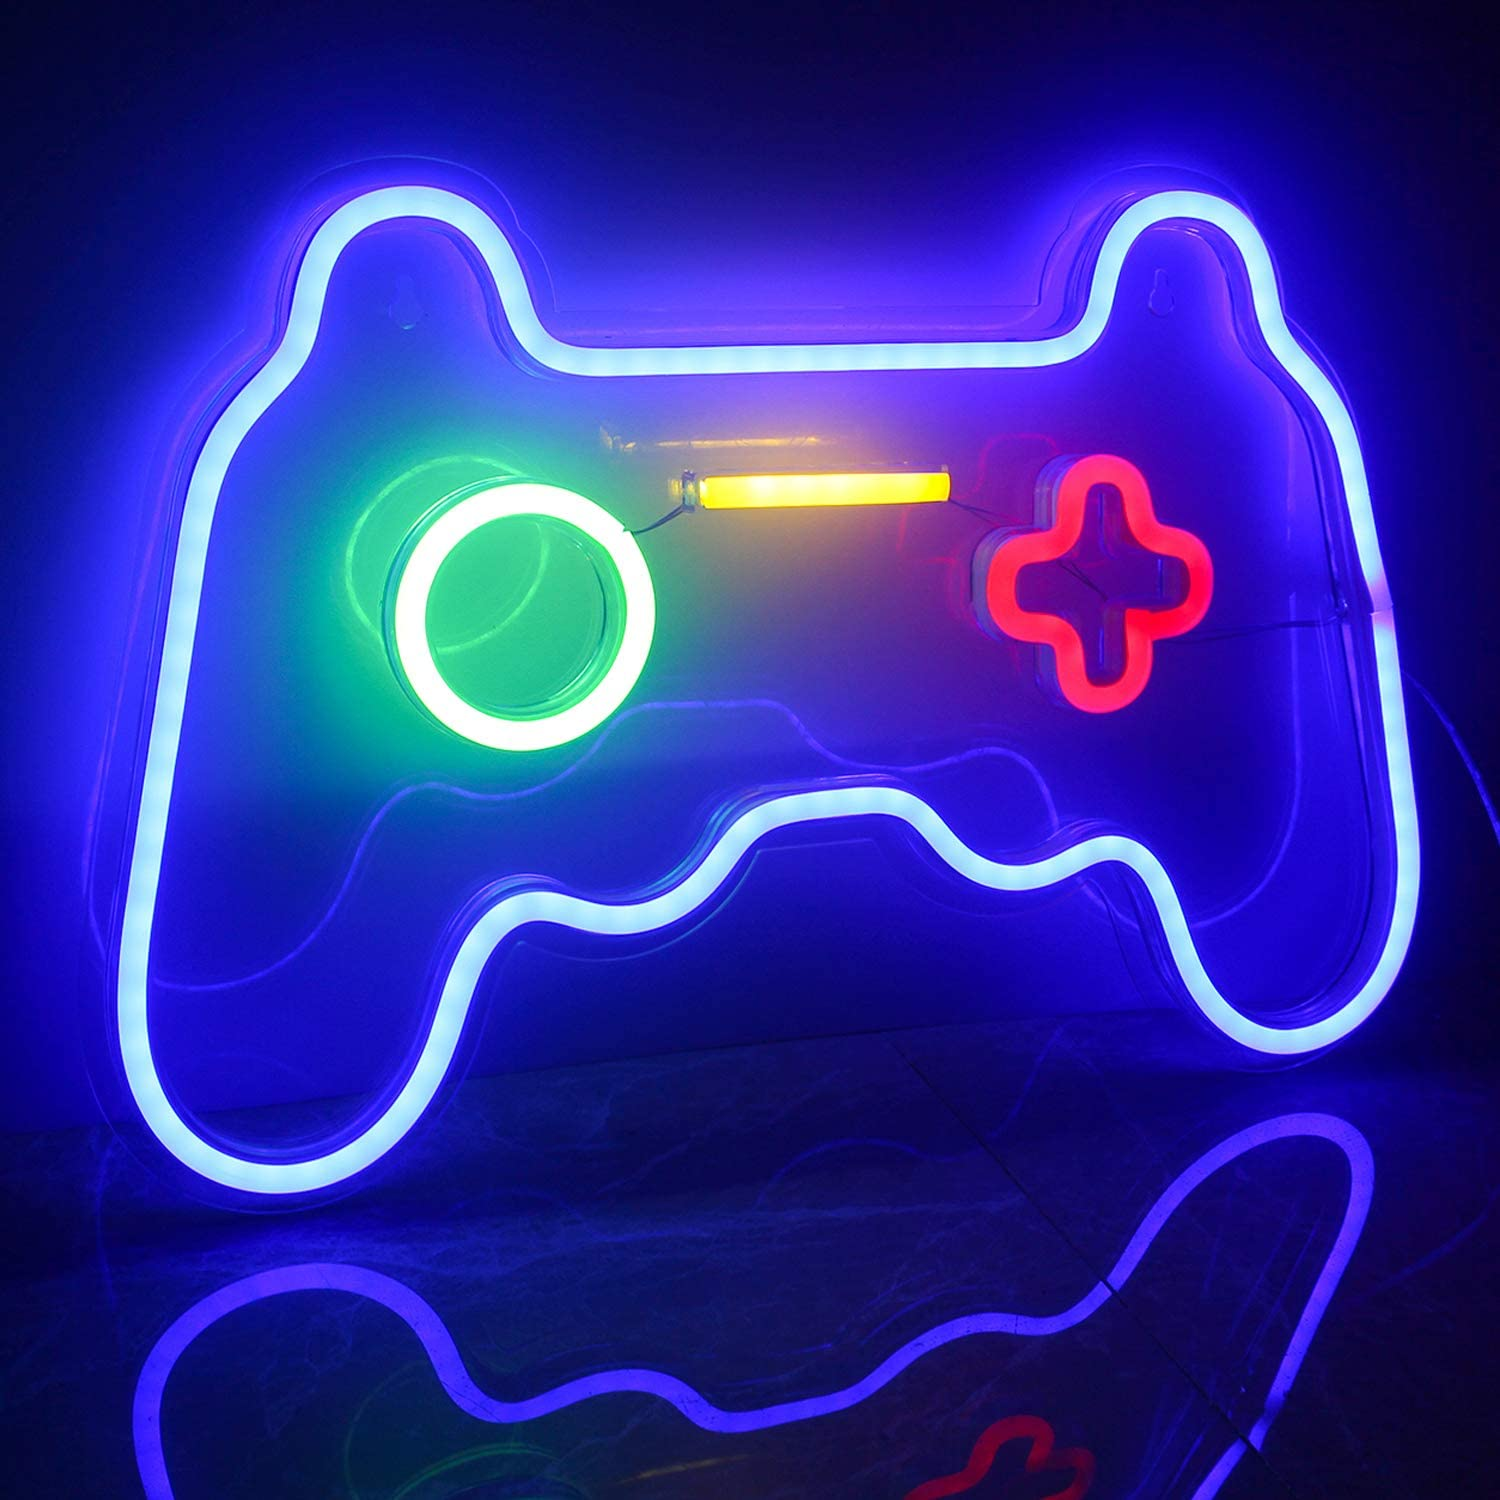 ineonlife Game Shaped Neon Signs Neon Lights LED Neon Signs for Wall Decor 16''x 11'' Gamepad Neon Signs for Bedroom Children Gaming Zone Party Decoration